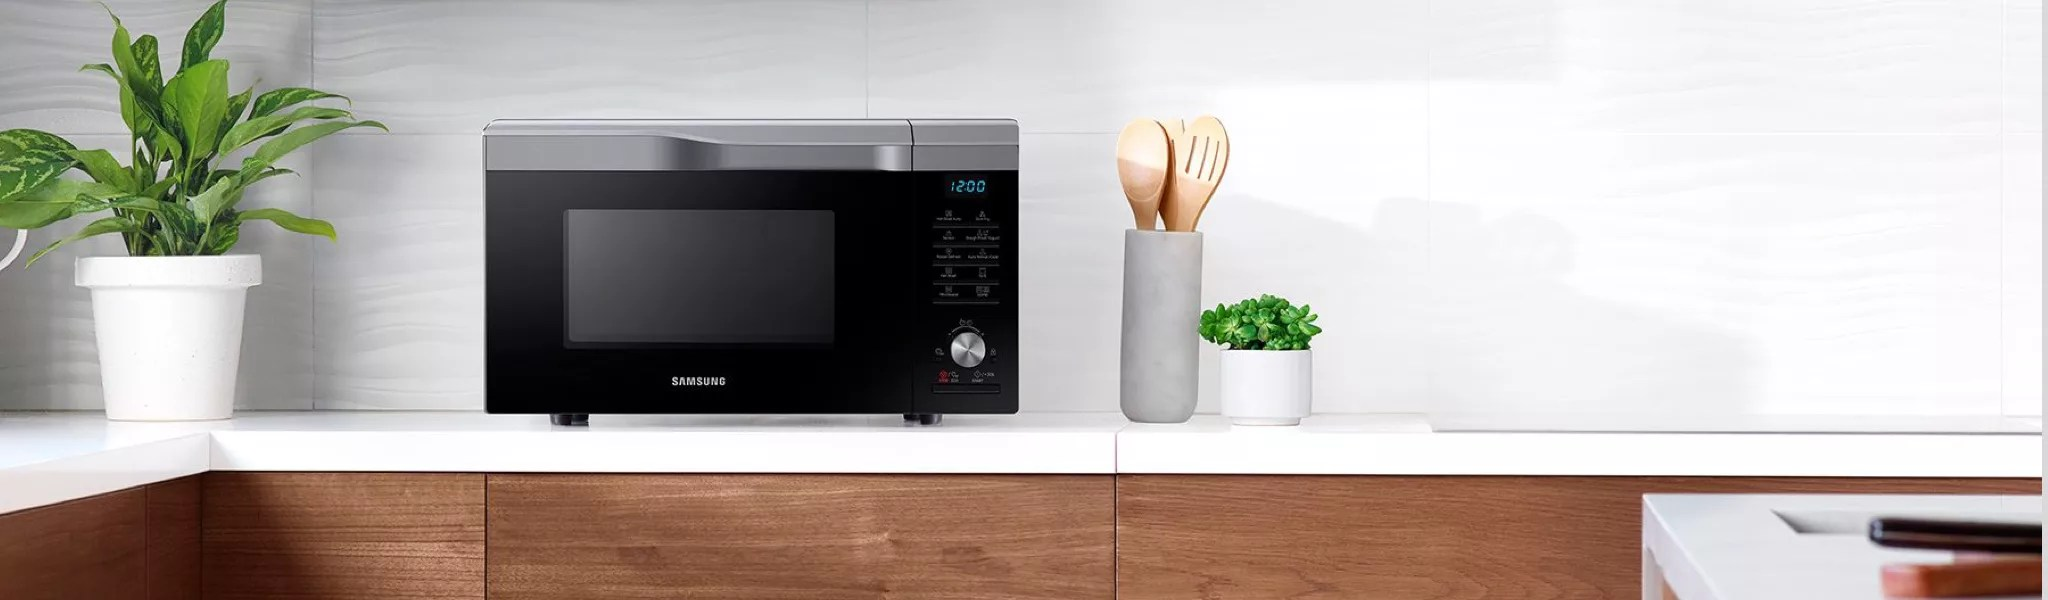 choosing a microwave oven